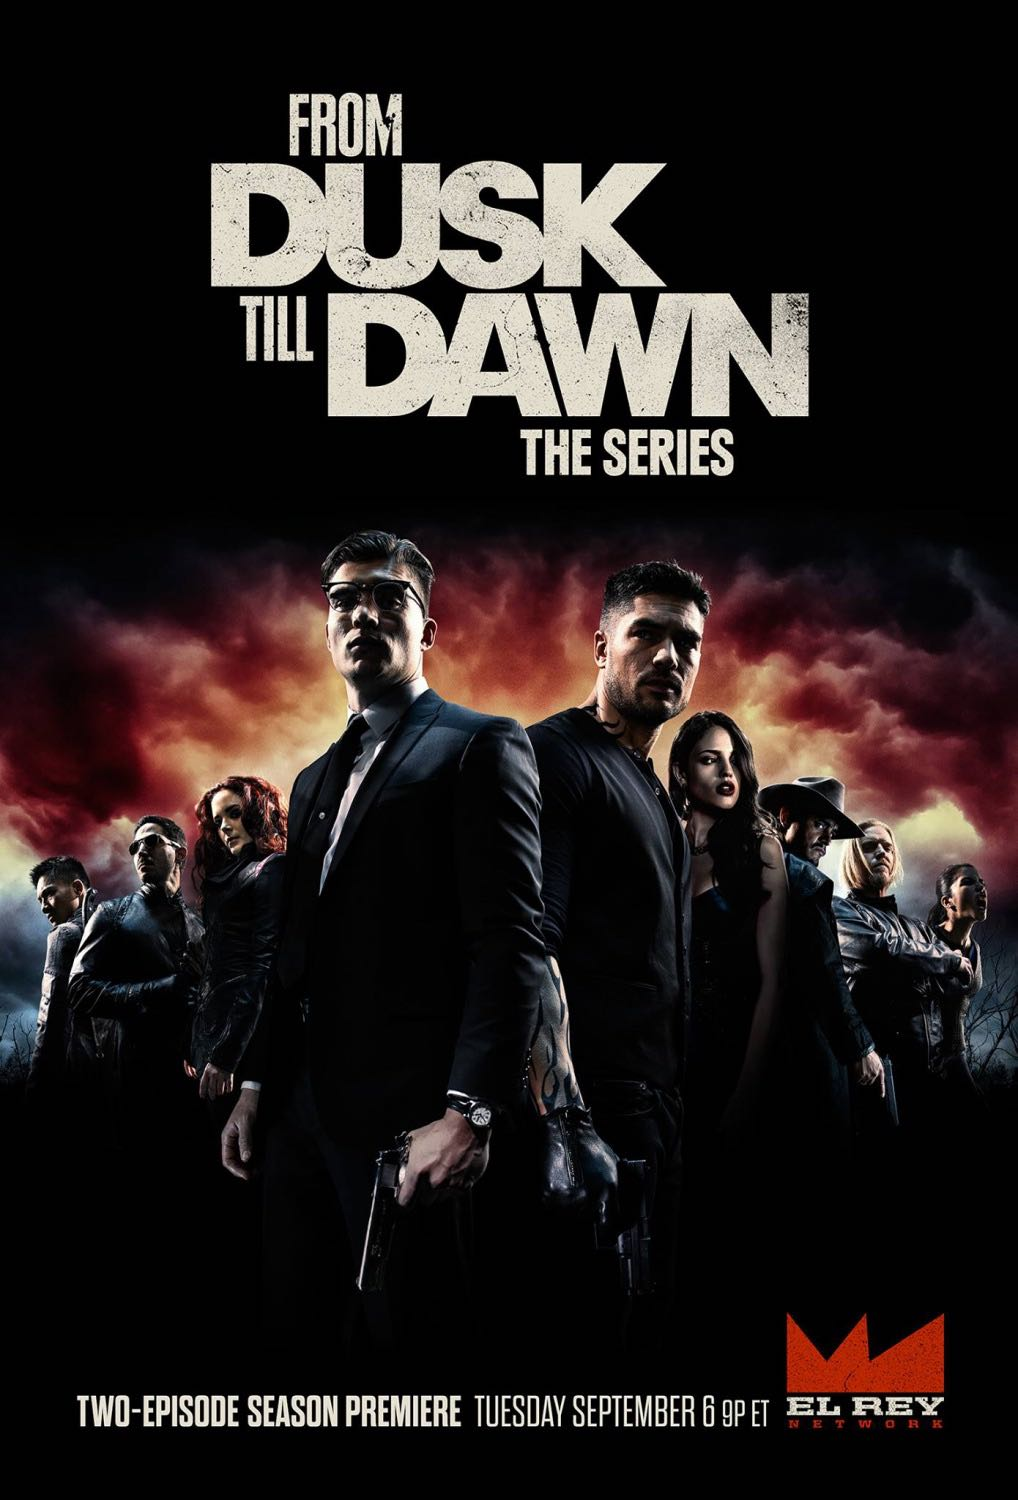 FROM DUSK TILL DAWN Season 3 Poster